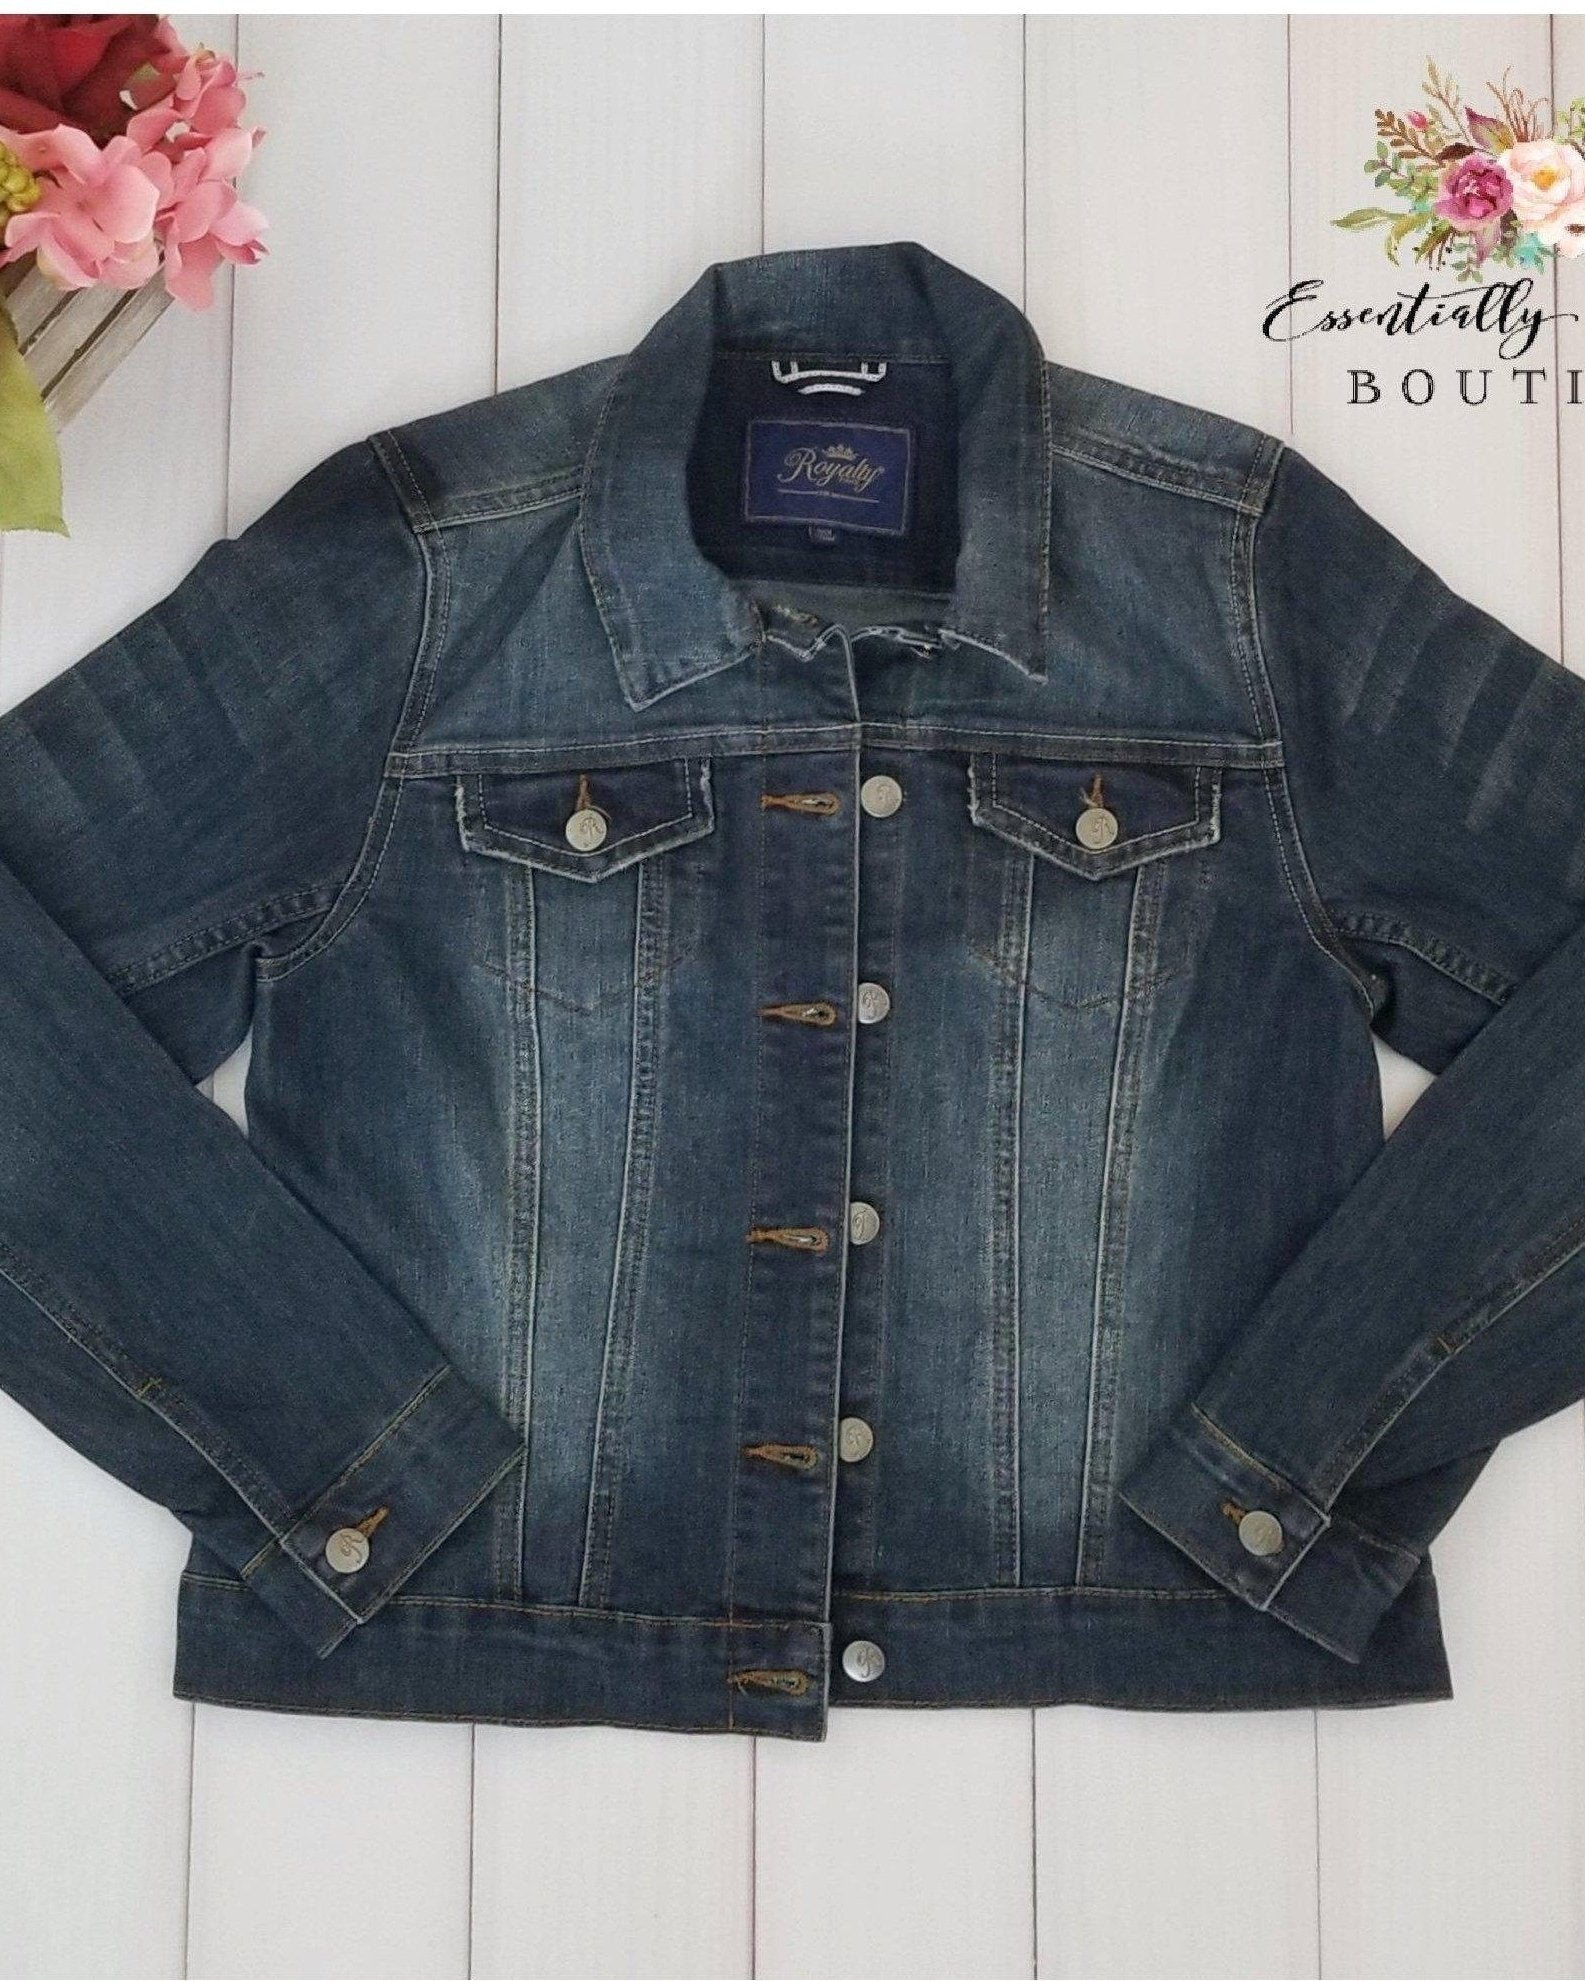 Dark Wash Distressed Denim Jacket - Essentially Elegant